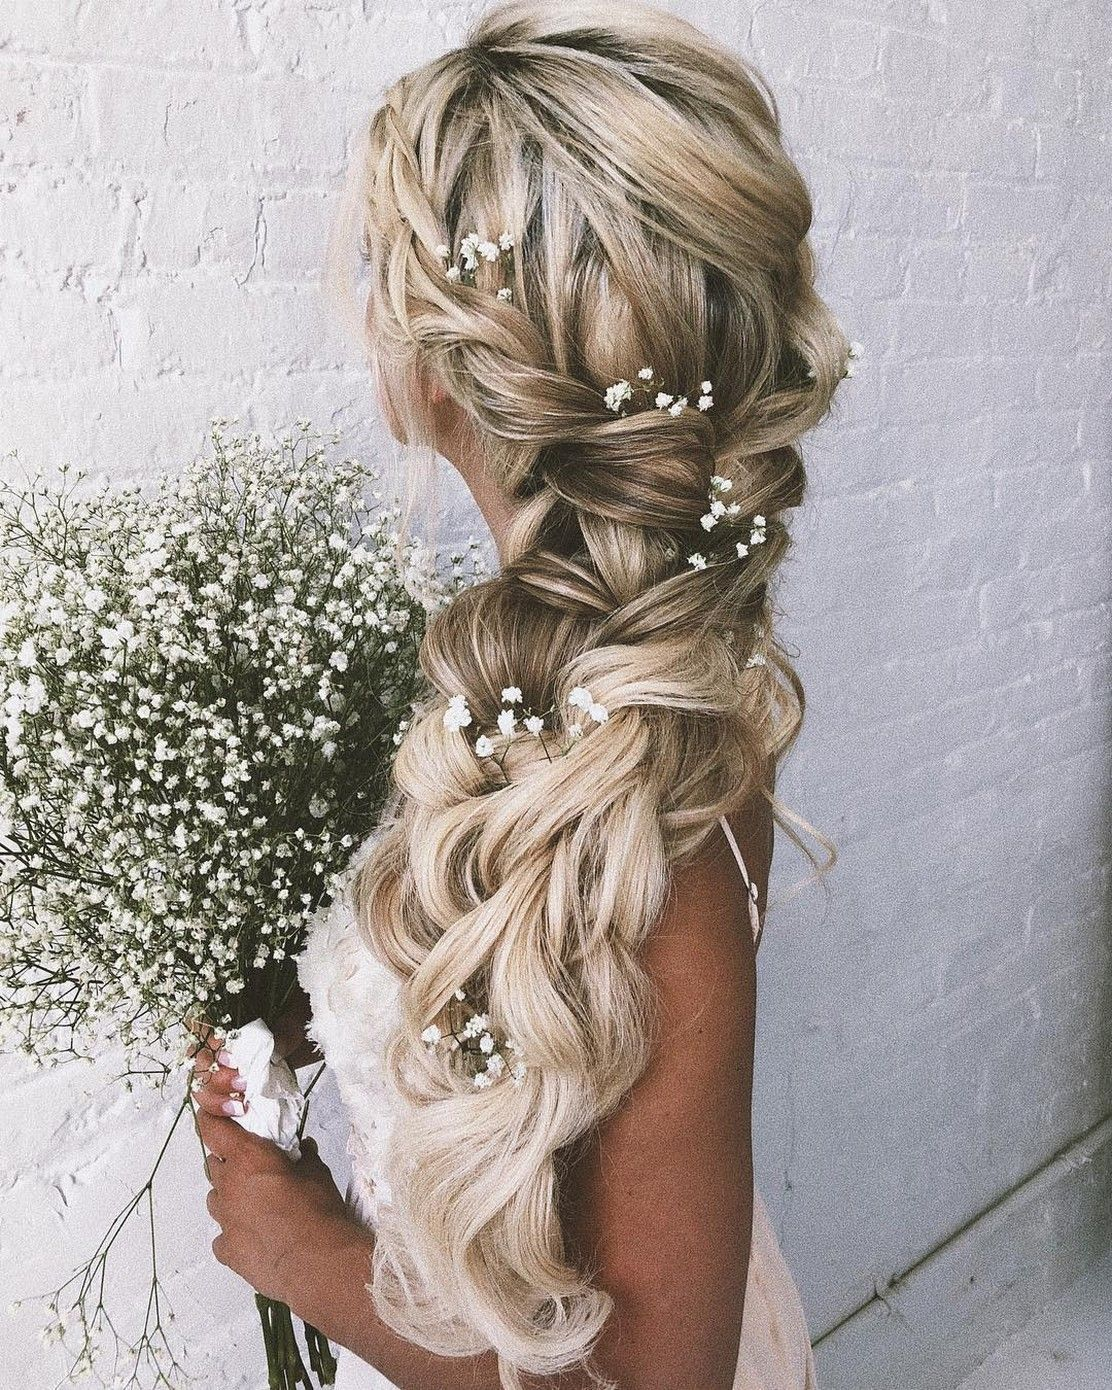 50 Styles Of Fishtail Braid To Inspire You Wedding Hairstyles Wedding Hair Inspiration Braided Hairstyles For Wedding Braids For Long Hair